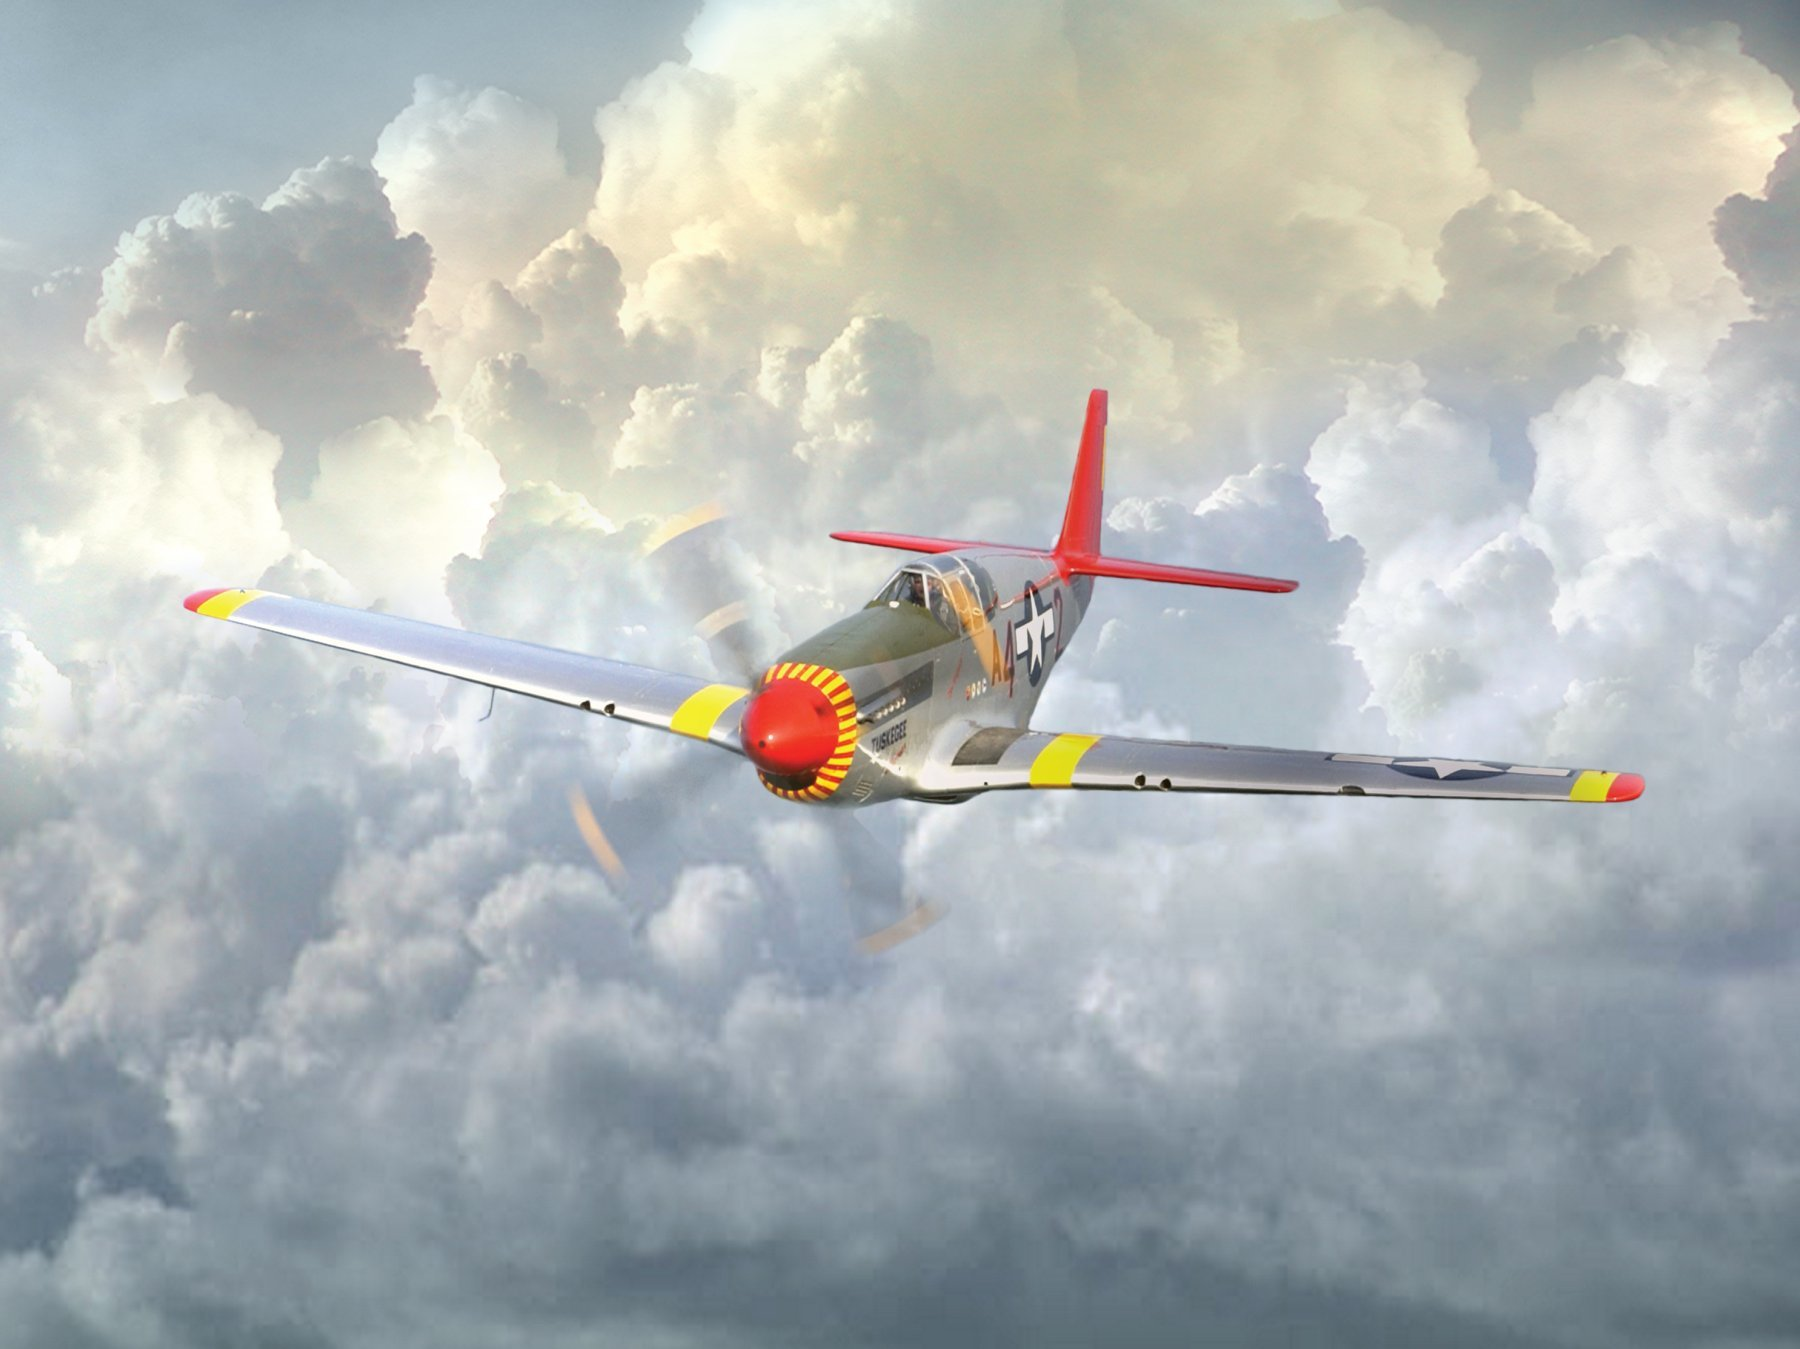 aircrafts military World War HD Wallpaper